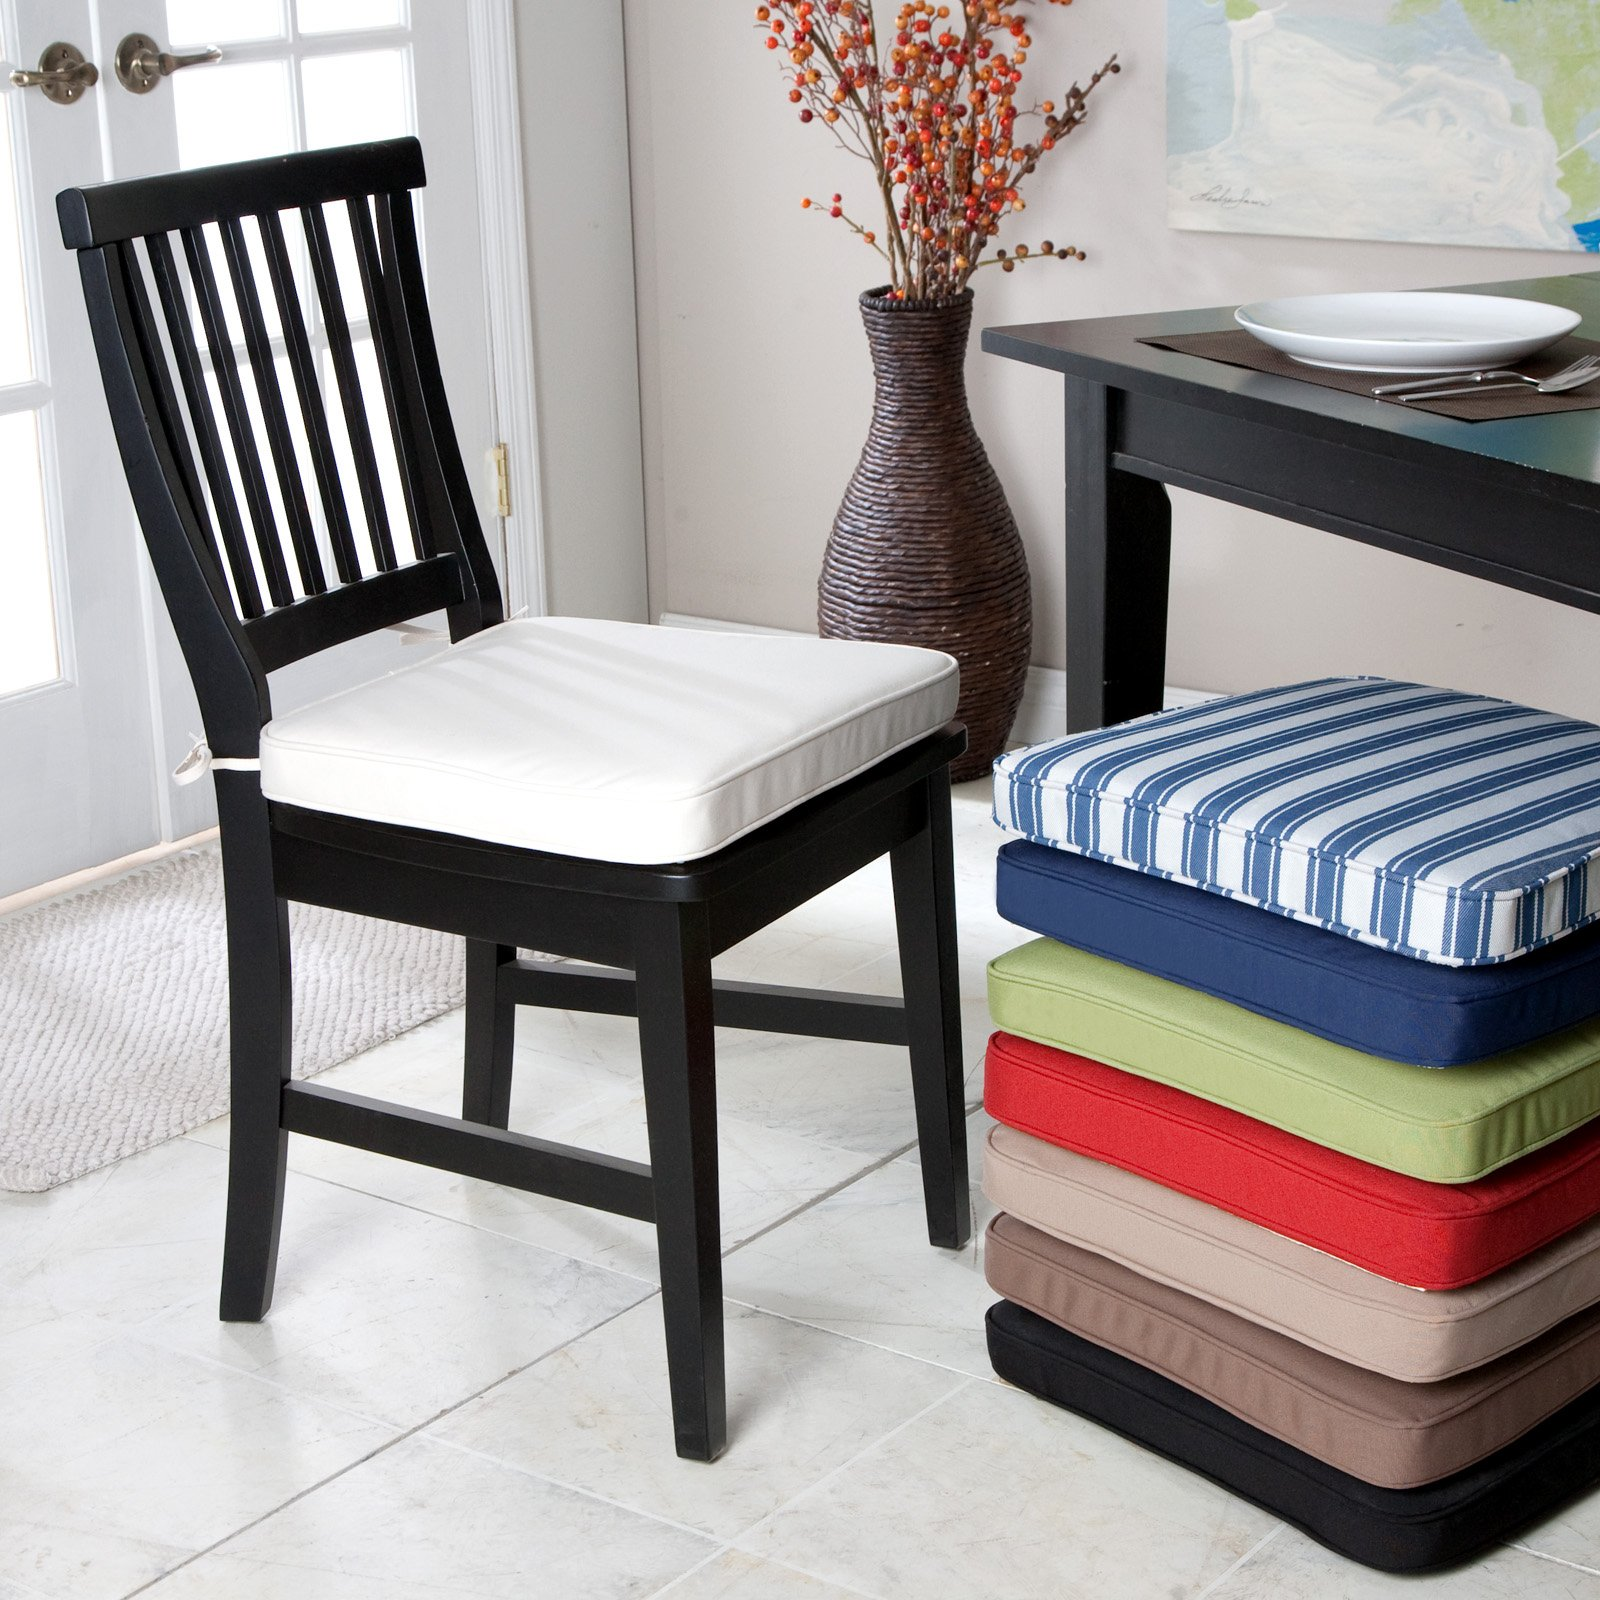 Seat Cushions Dining Room Chairs Large And Beautiful Photos Photo To Select Seat Cushions